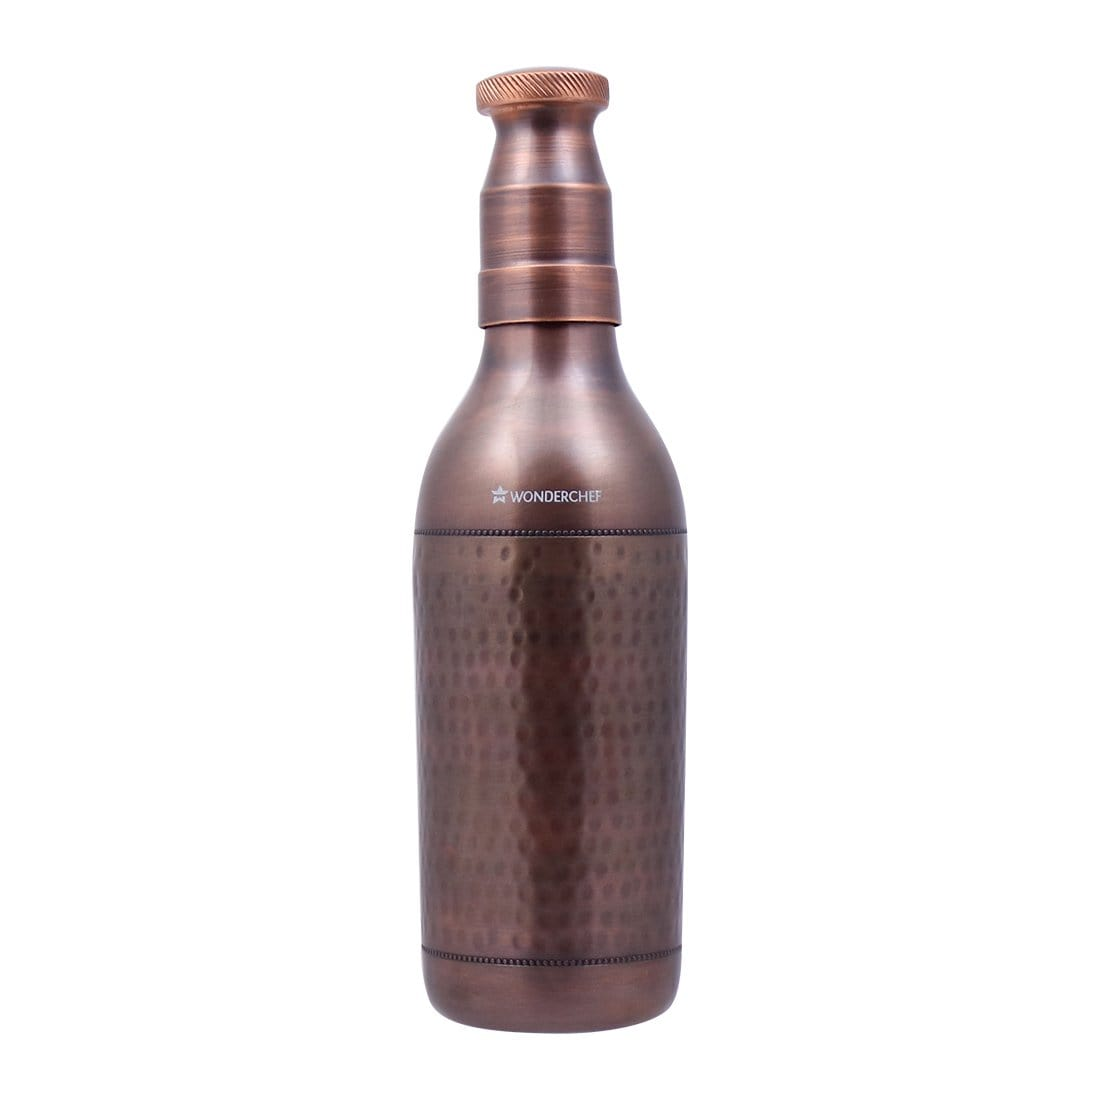 Wonderchef Cu Antique Bottle 1.5 L